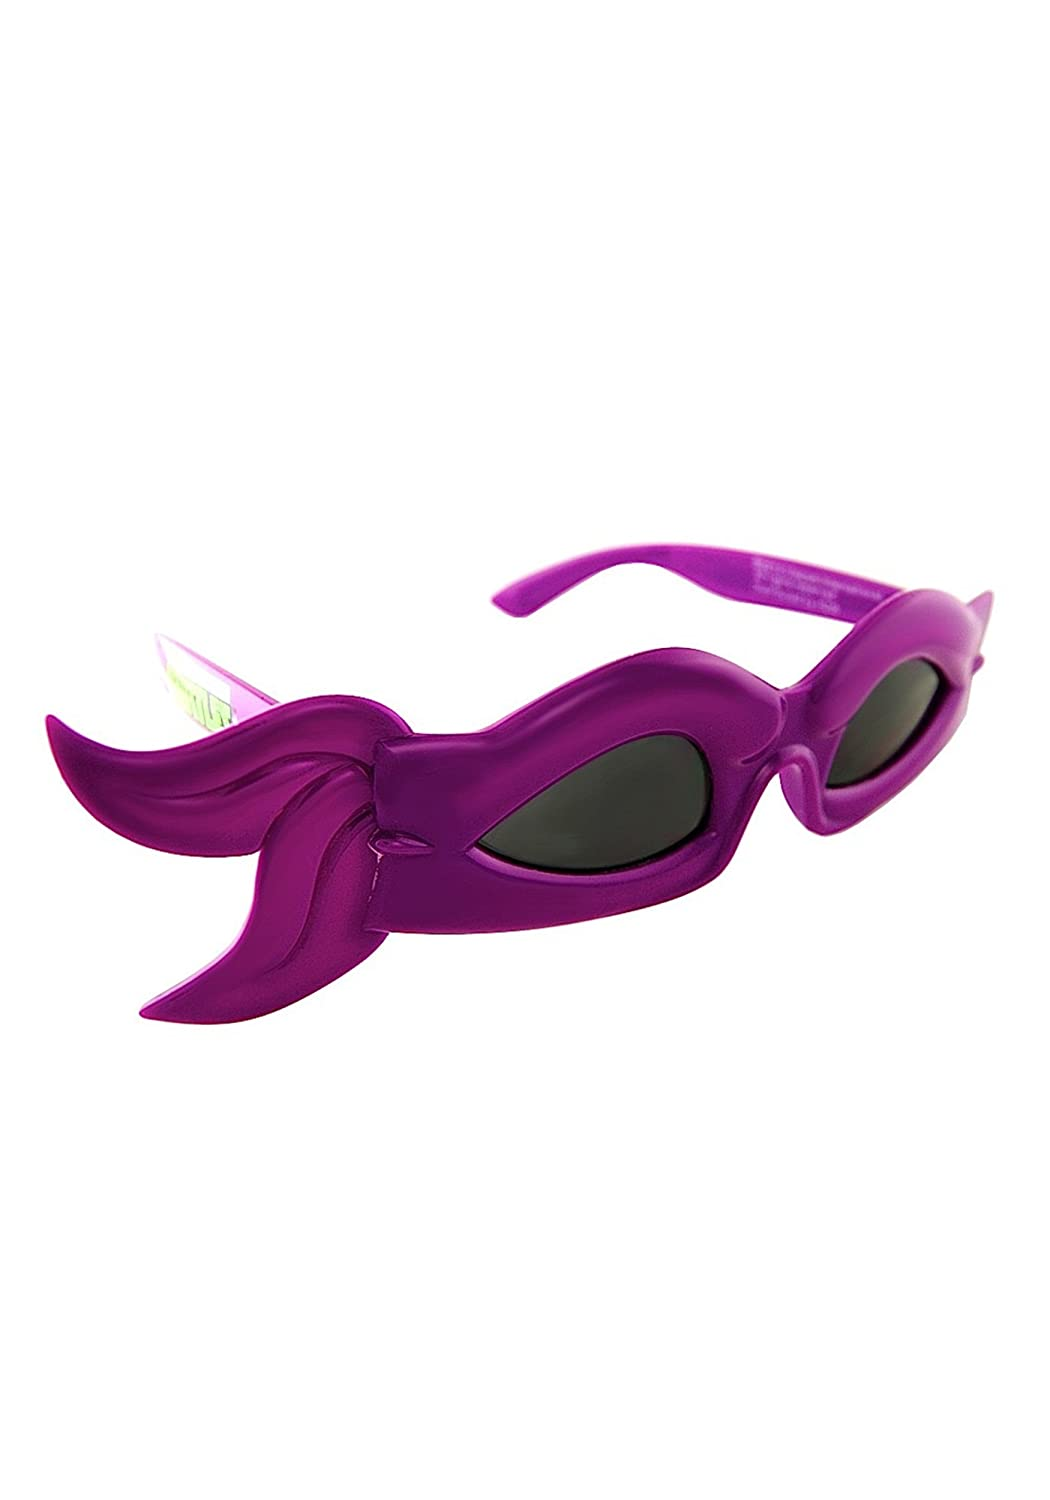 Costume Sunglasses TMNT Bandana Purple Sun-Staches Party Favors UV400